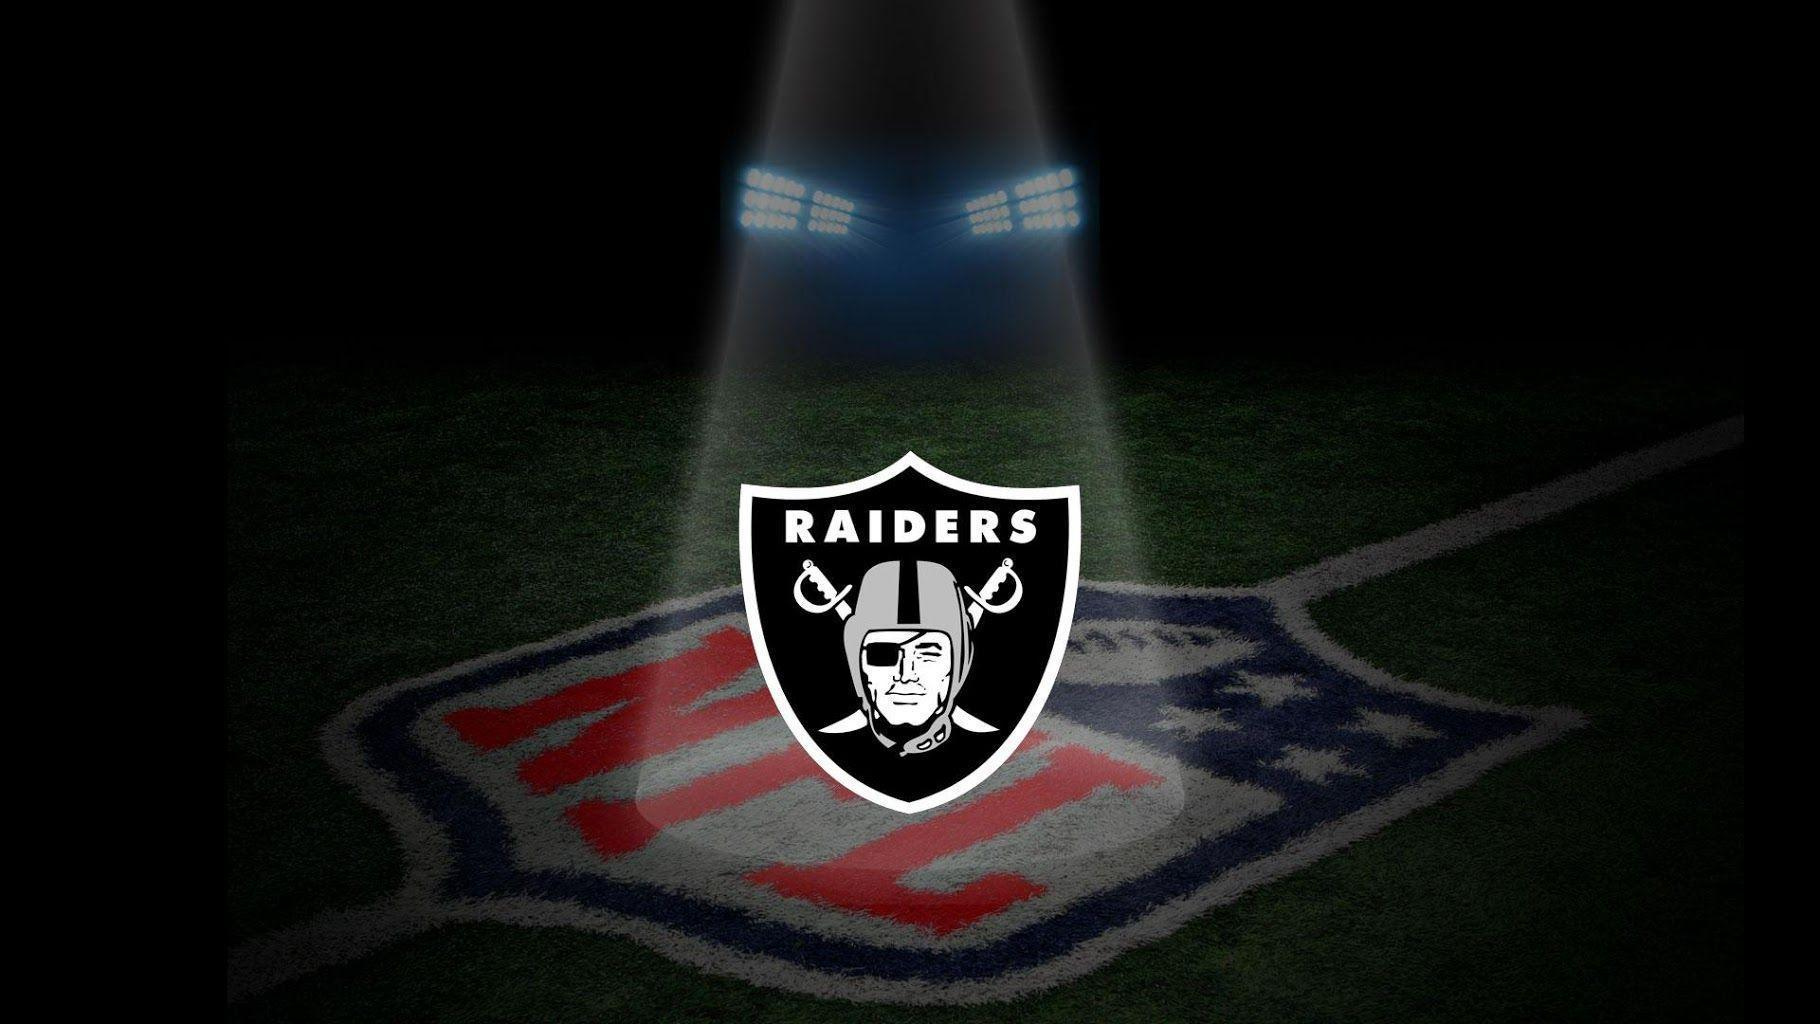 Oakland Raiders Wallpaper and Screensavers - WallpaperSafari